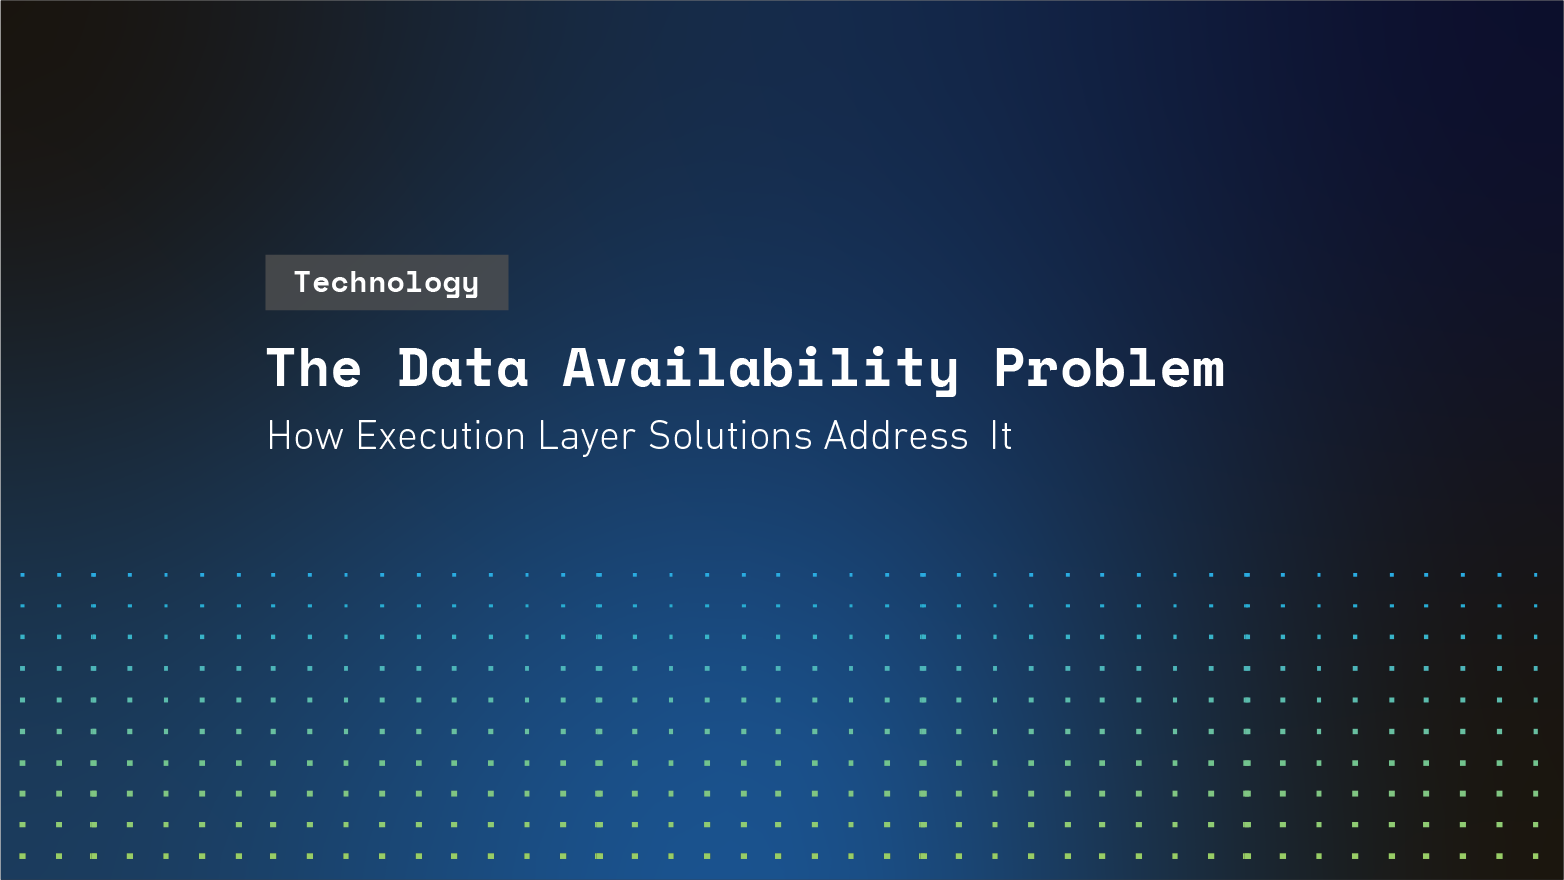 The Data Availability Problem